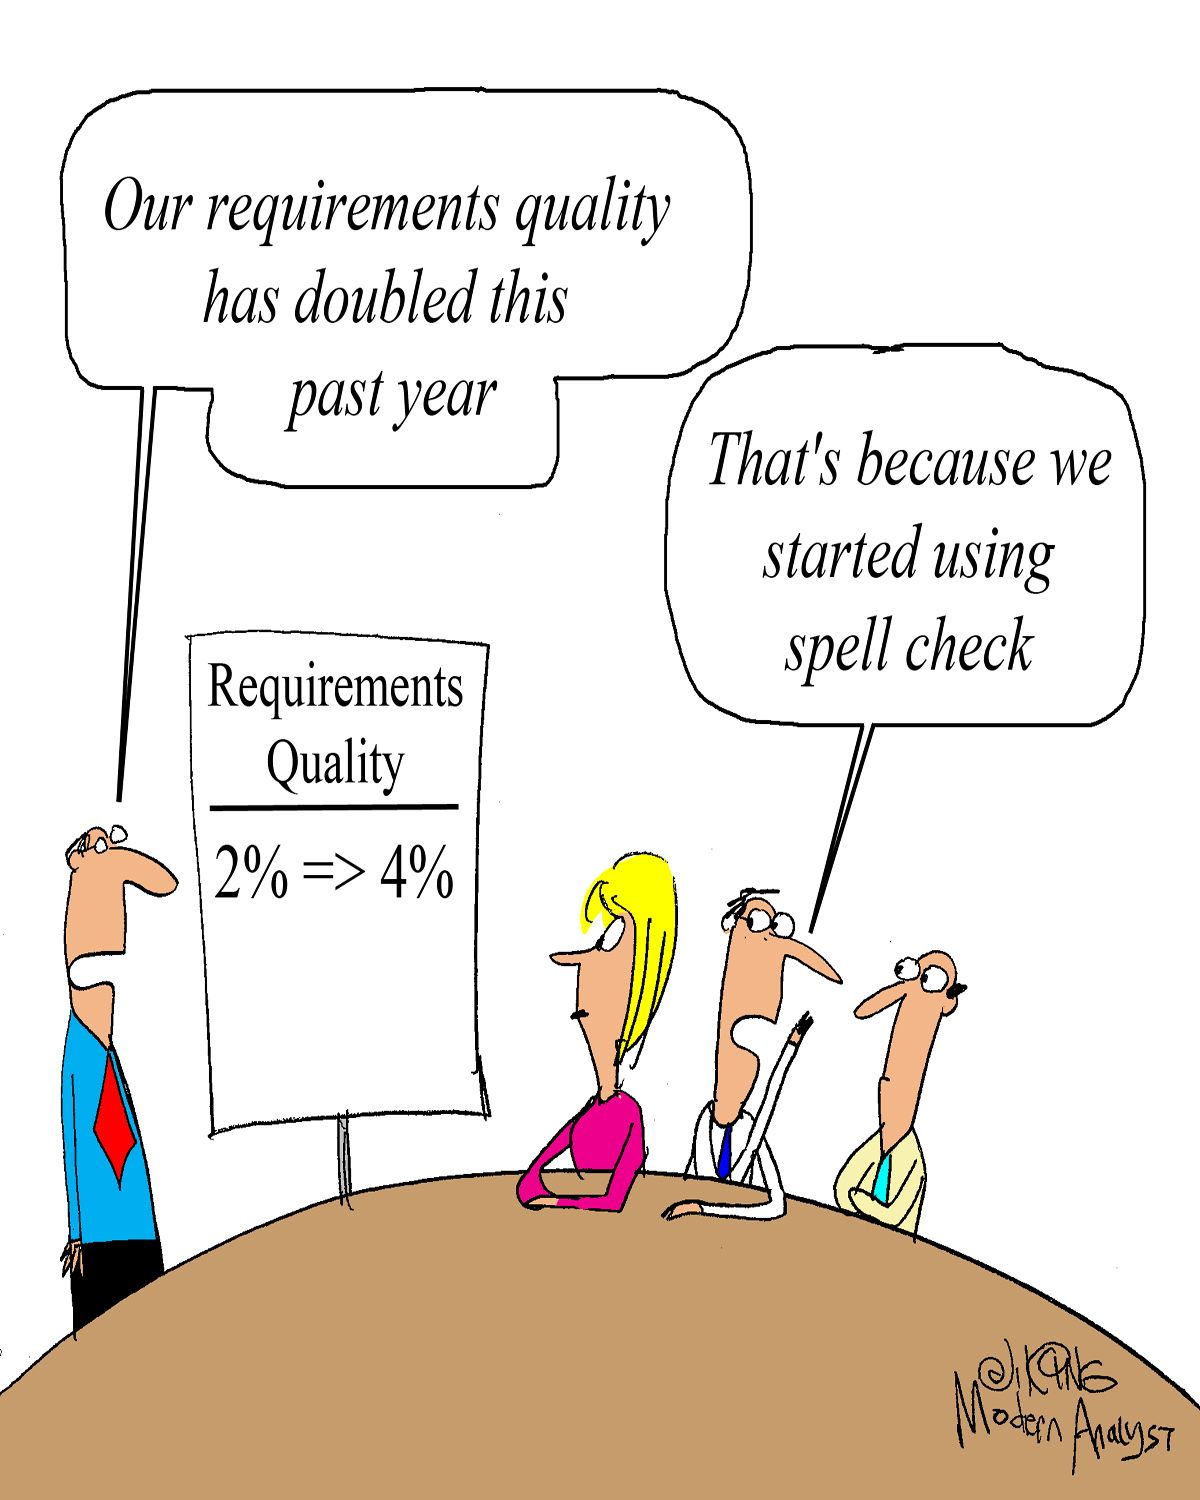 Humor Cartoon How To Increase Requirements Quality Humor